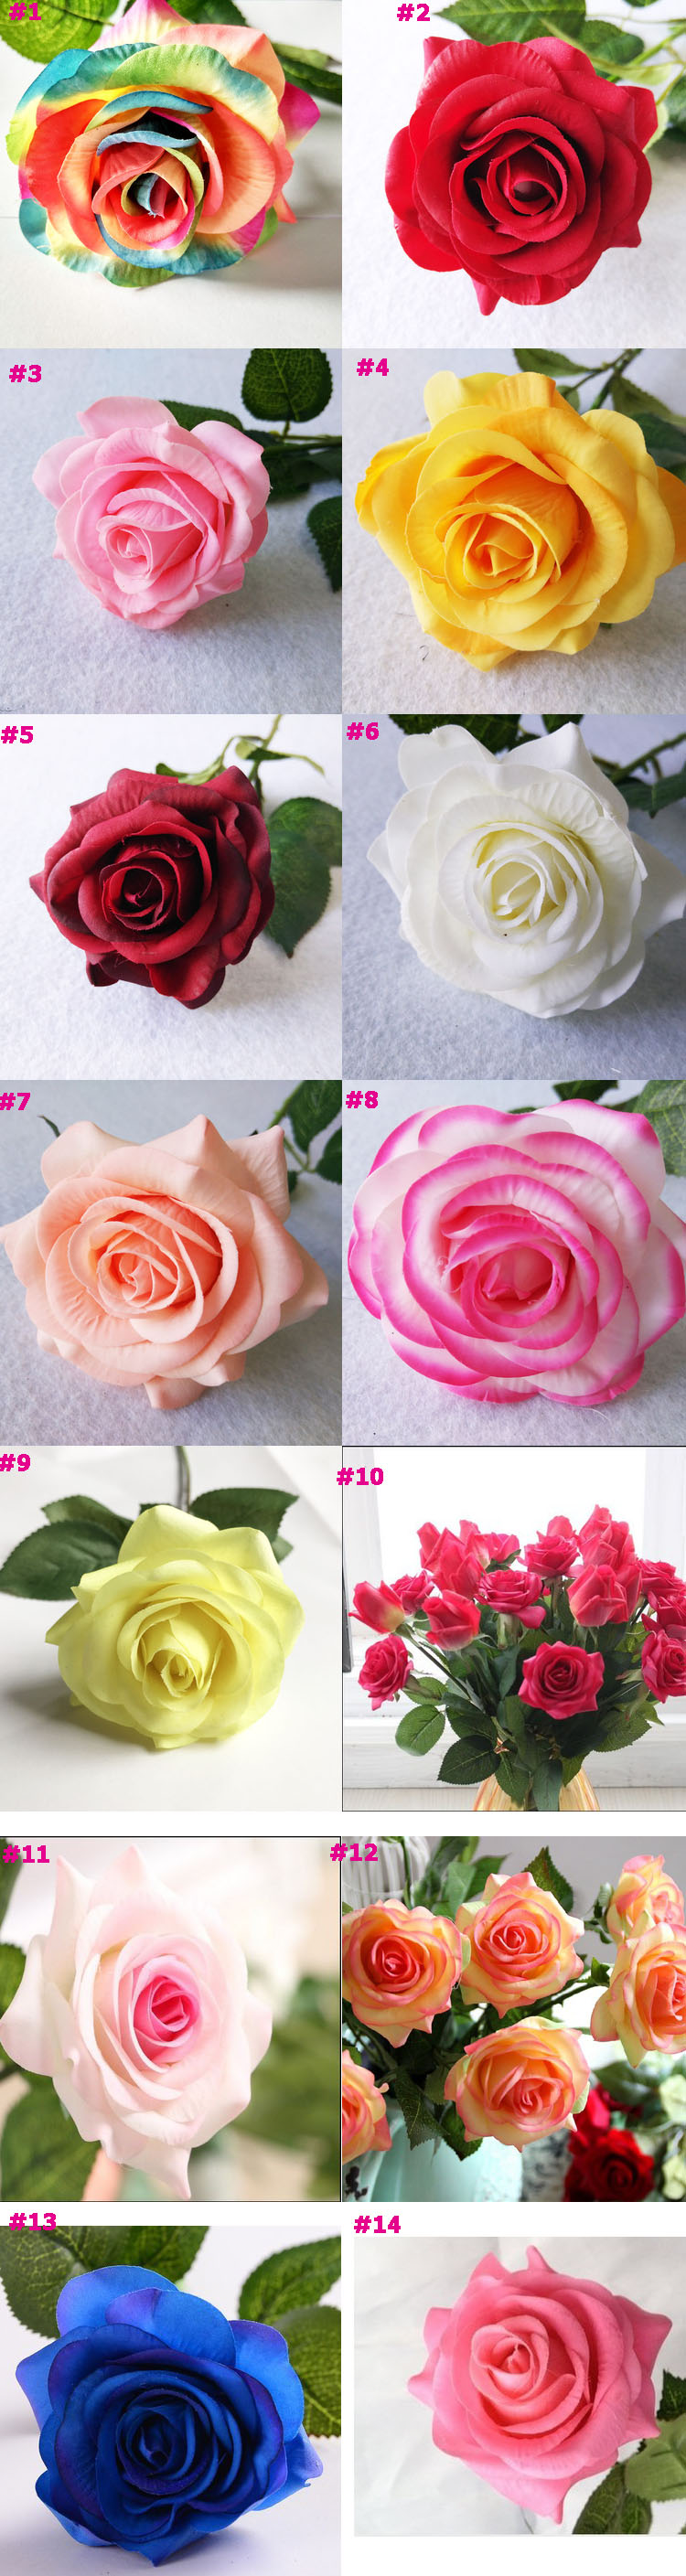 Artificial Flowers Silk Artificial Roses Bridal Wedding Bouquet for Home Garden Party Wedding Decoration